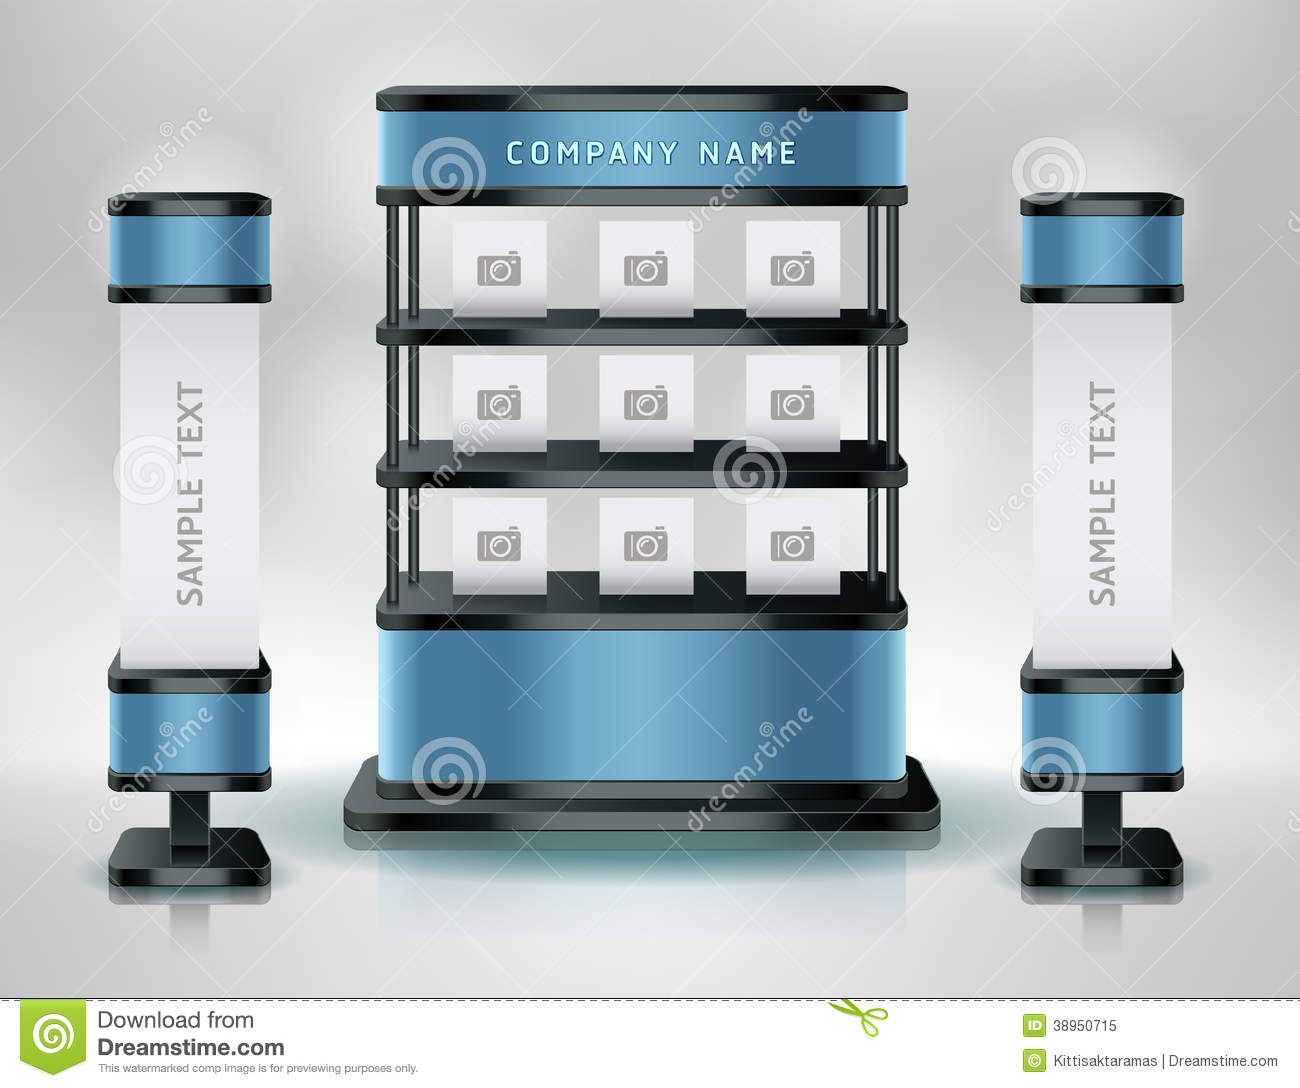 Exhibition Stand Vector Free Download : Trade exhibition stand display stock vector image